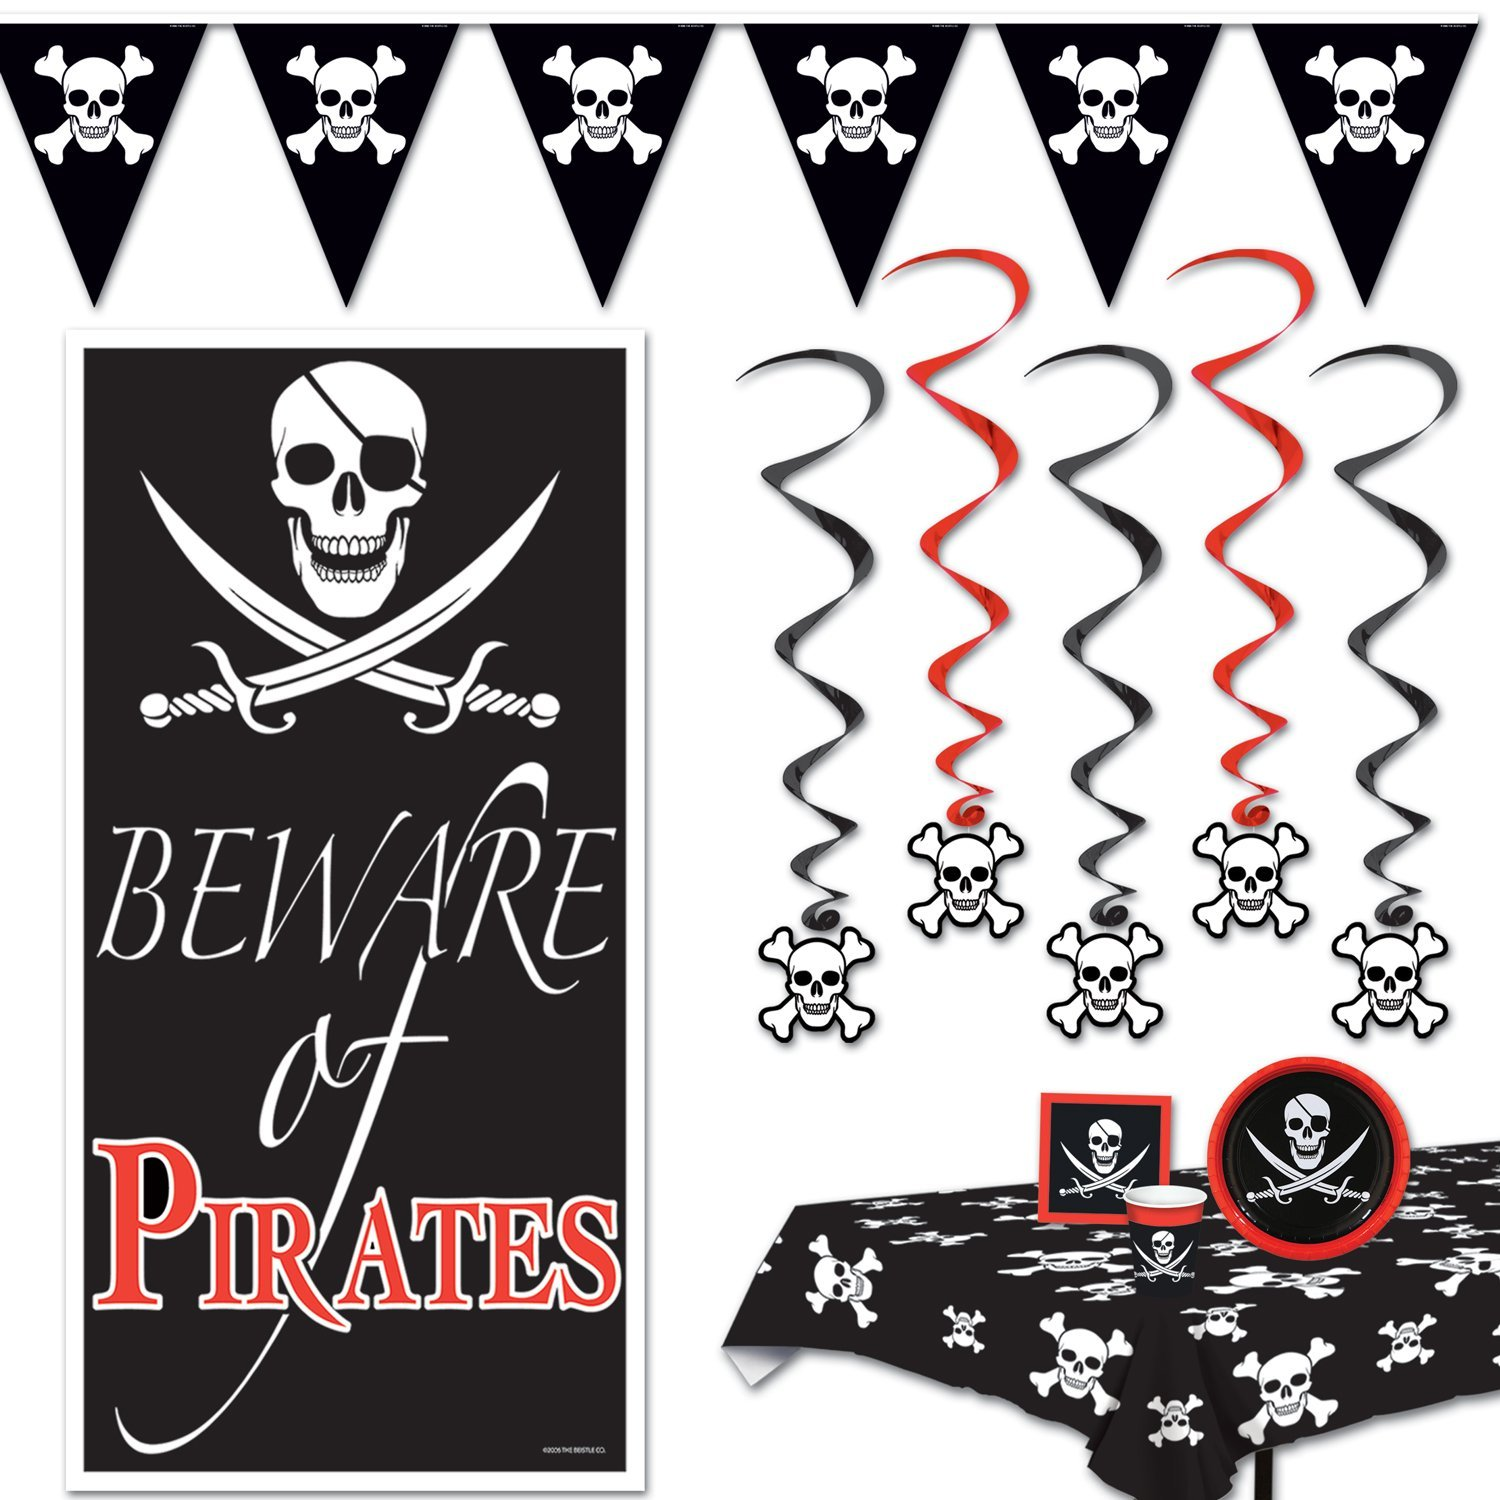 All-in-one Pirate Themed Party Supplies and Halloween Party Decorations bundle- 5 Whirls, 1 Pirate Door Cover, 1 Pirate Tablecover, 1 Jolly Roger Pennant Banner, 16 Napkins, 8 Beverage Cups and Plates